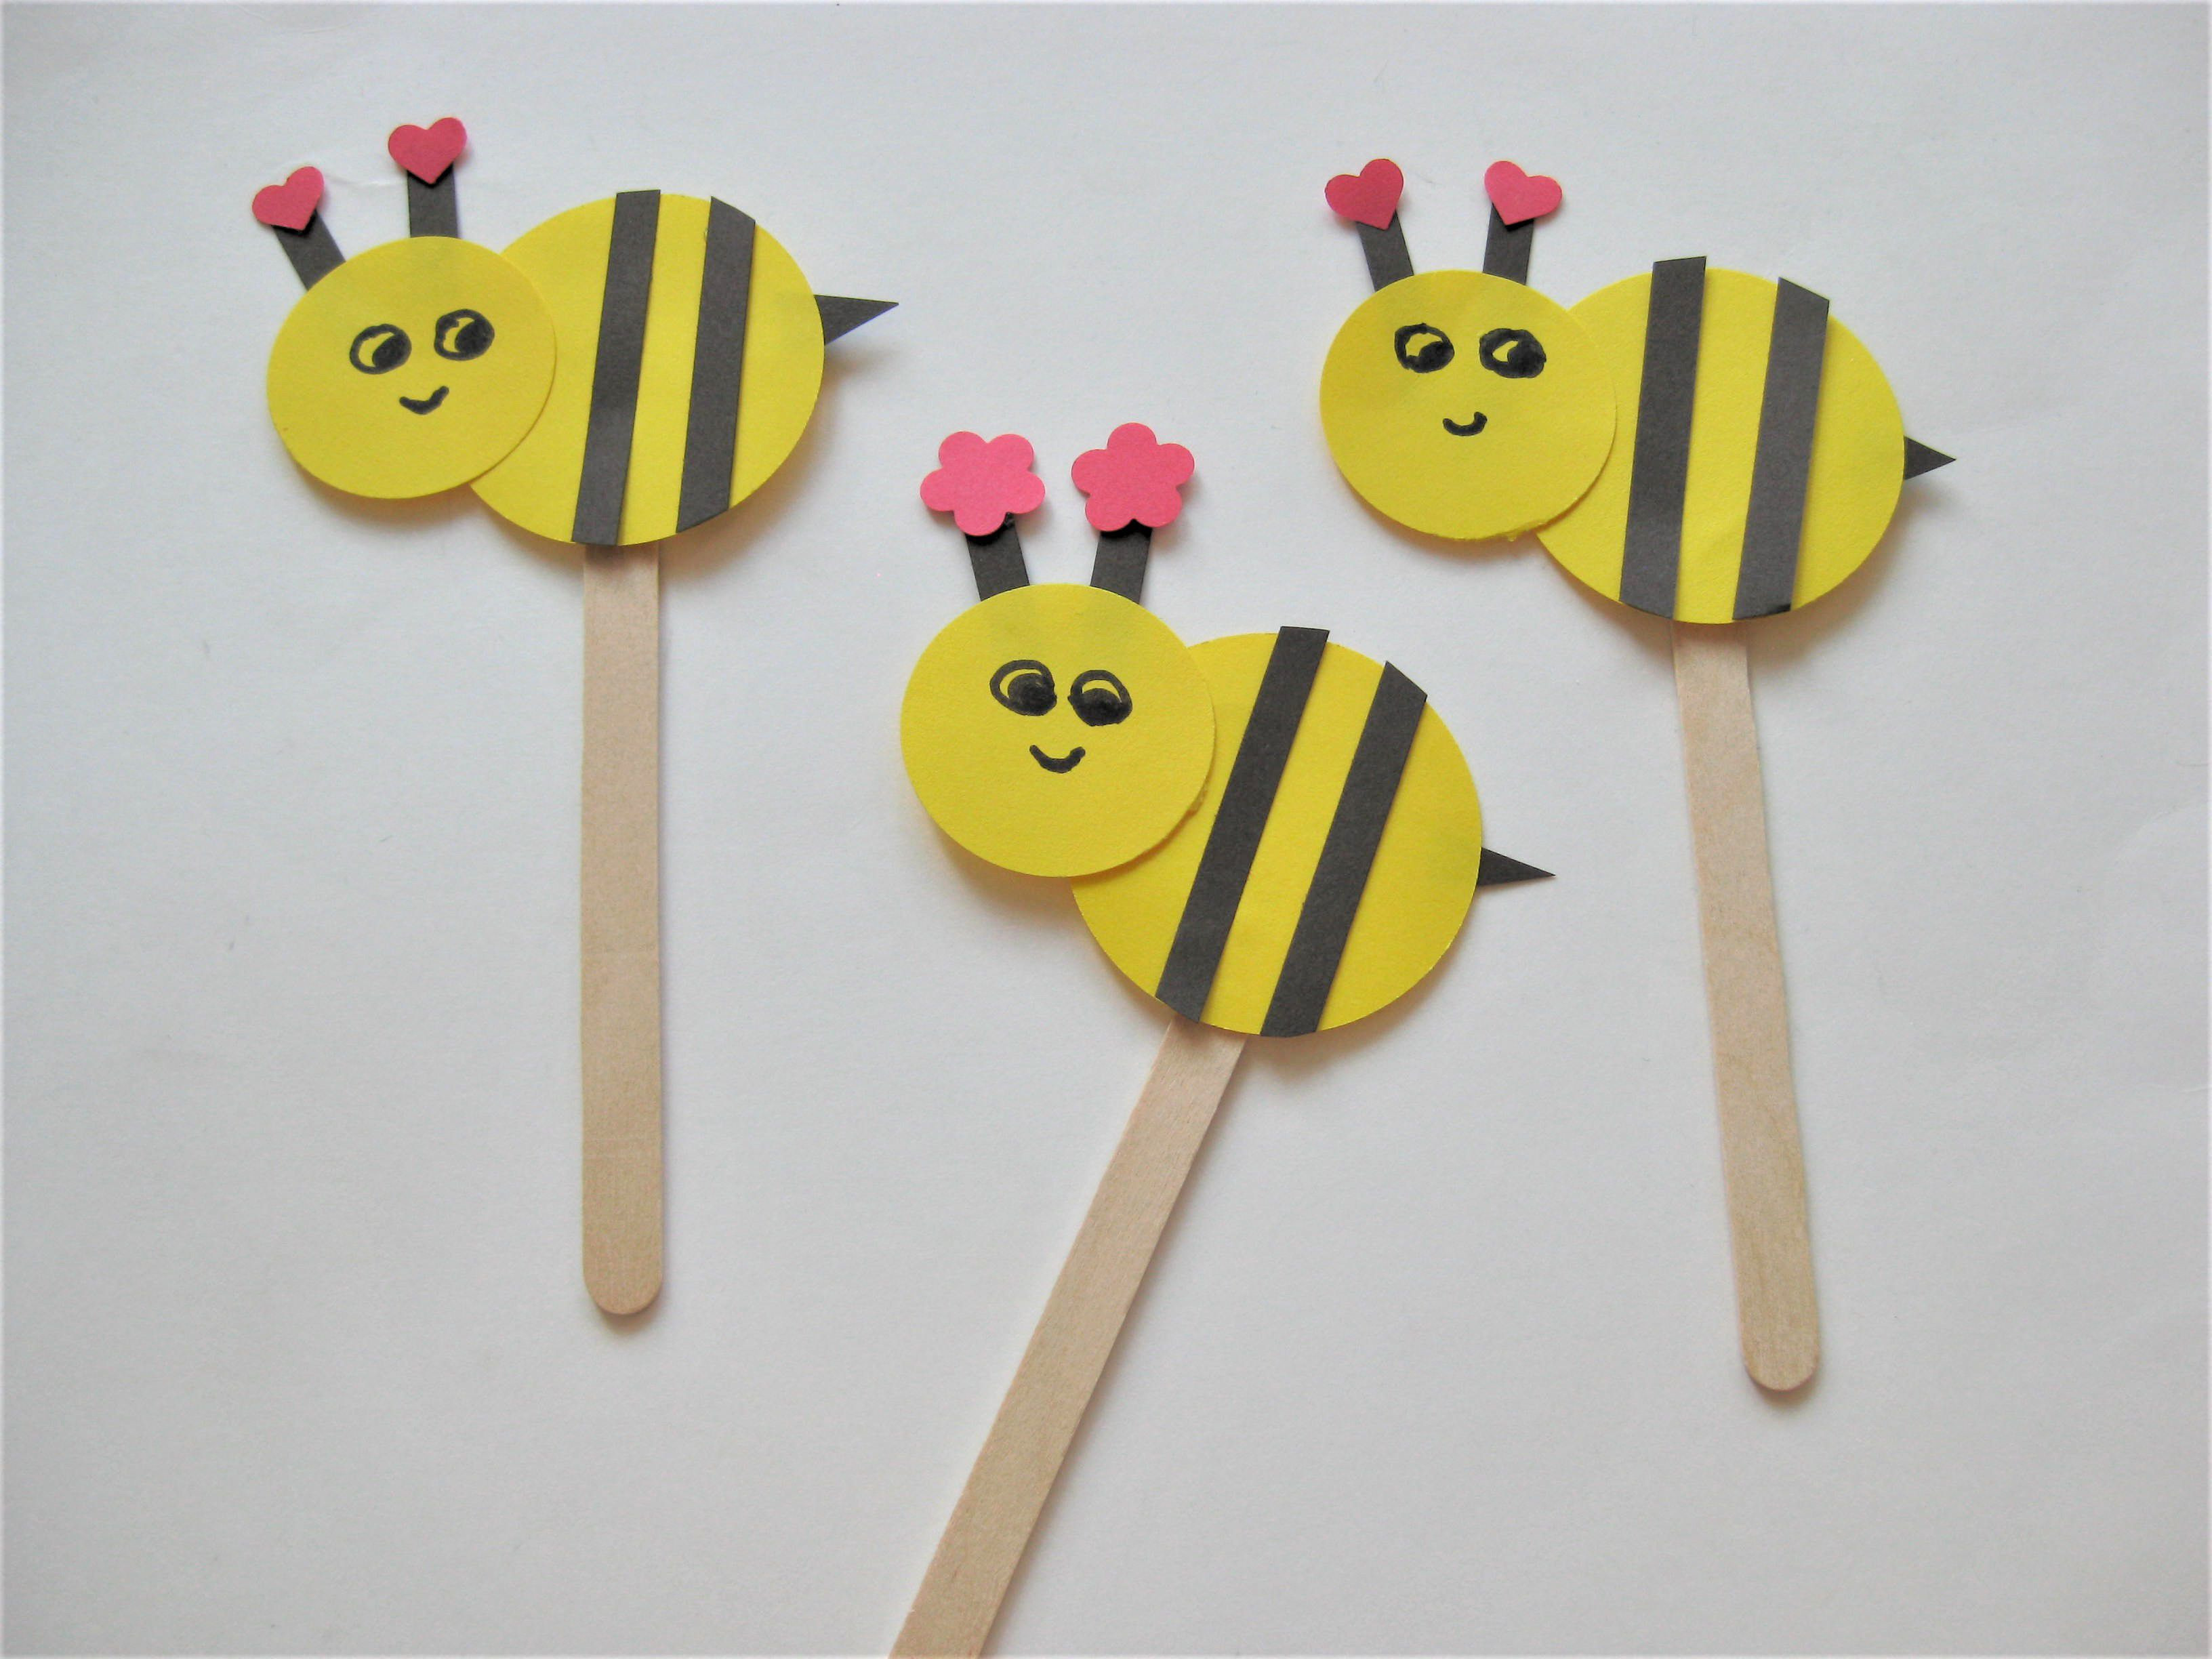 Best ideas about Simple Crafts For Toddlers . Save or Pin Bee Craft for Kids Now.